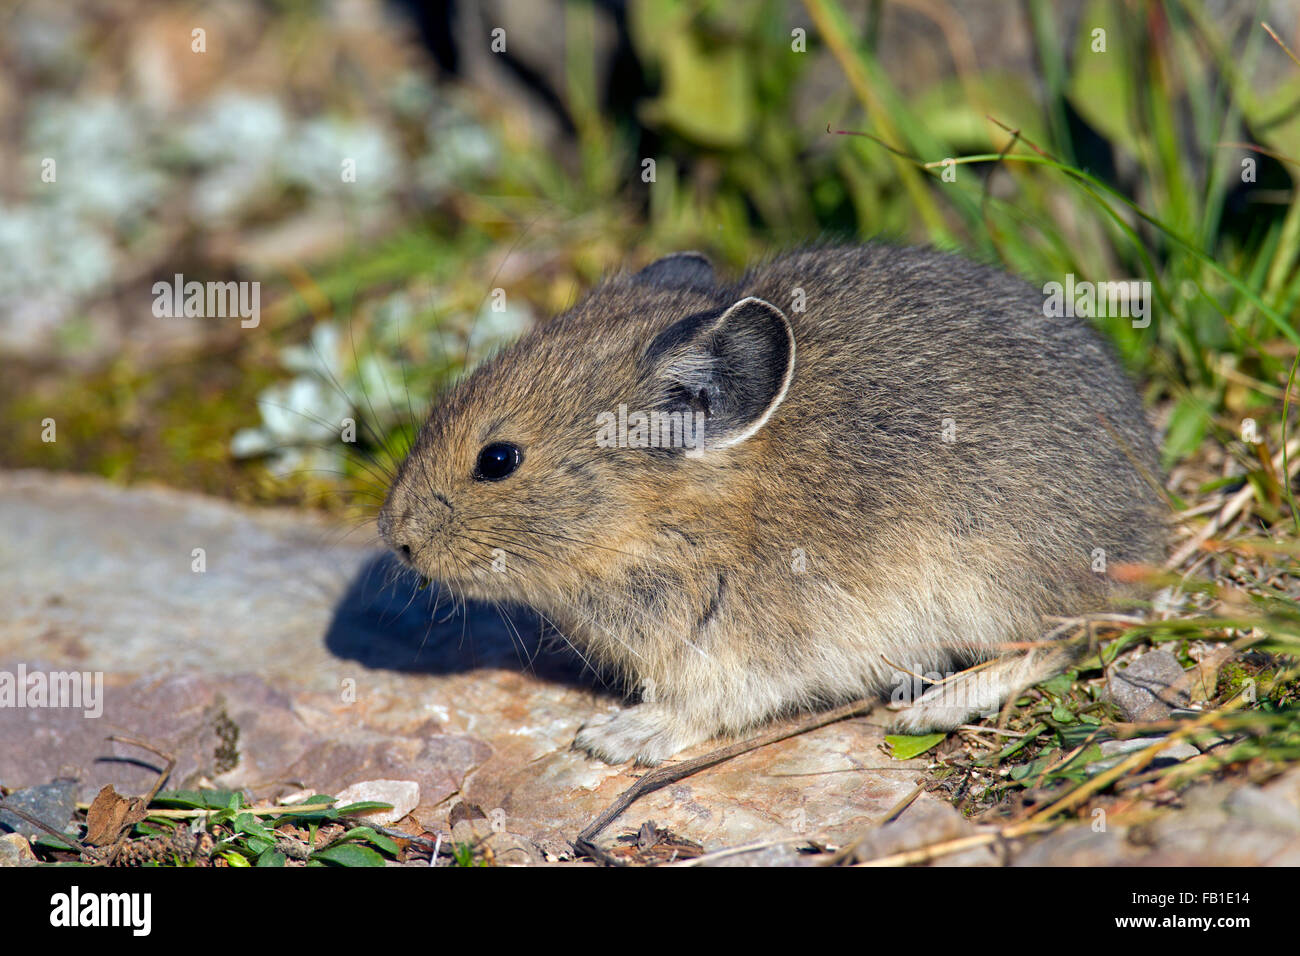 American pika (Ochotona princeps) native to alpine regions of Canada and western US, first victims to global climate - Stock Image